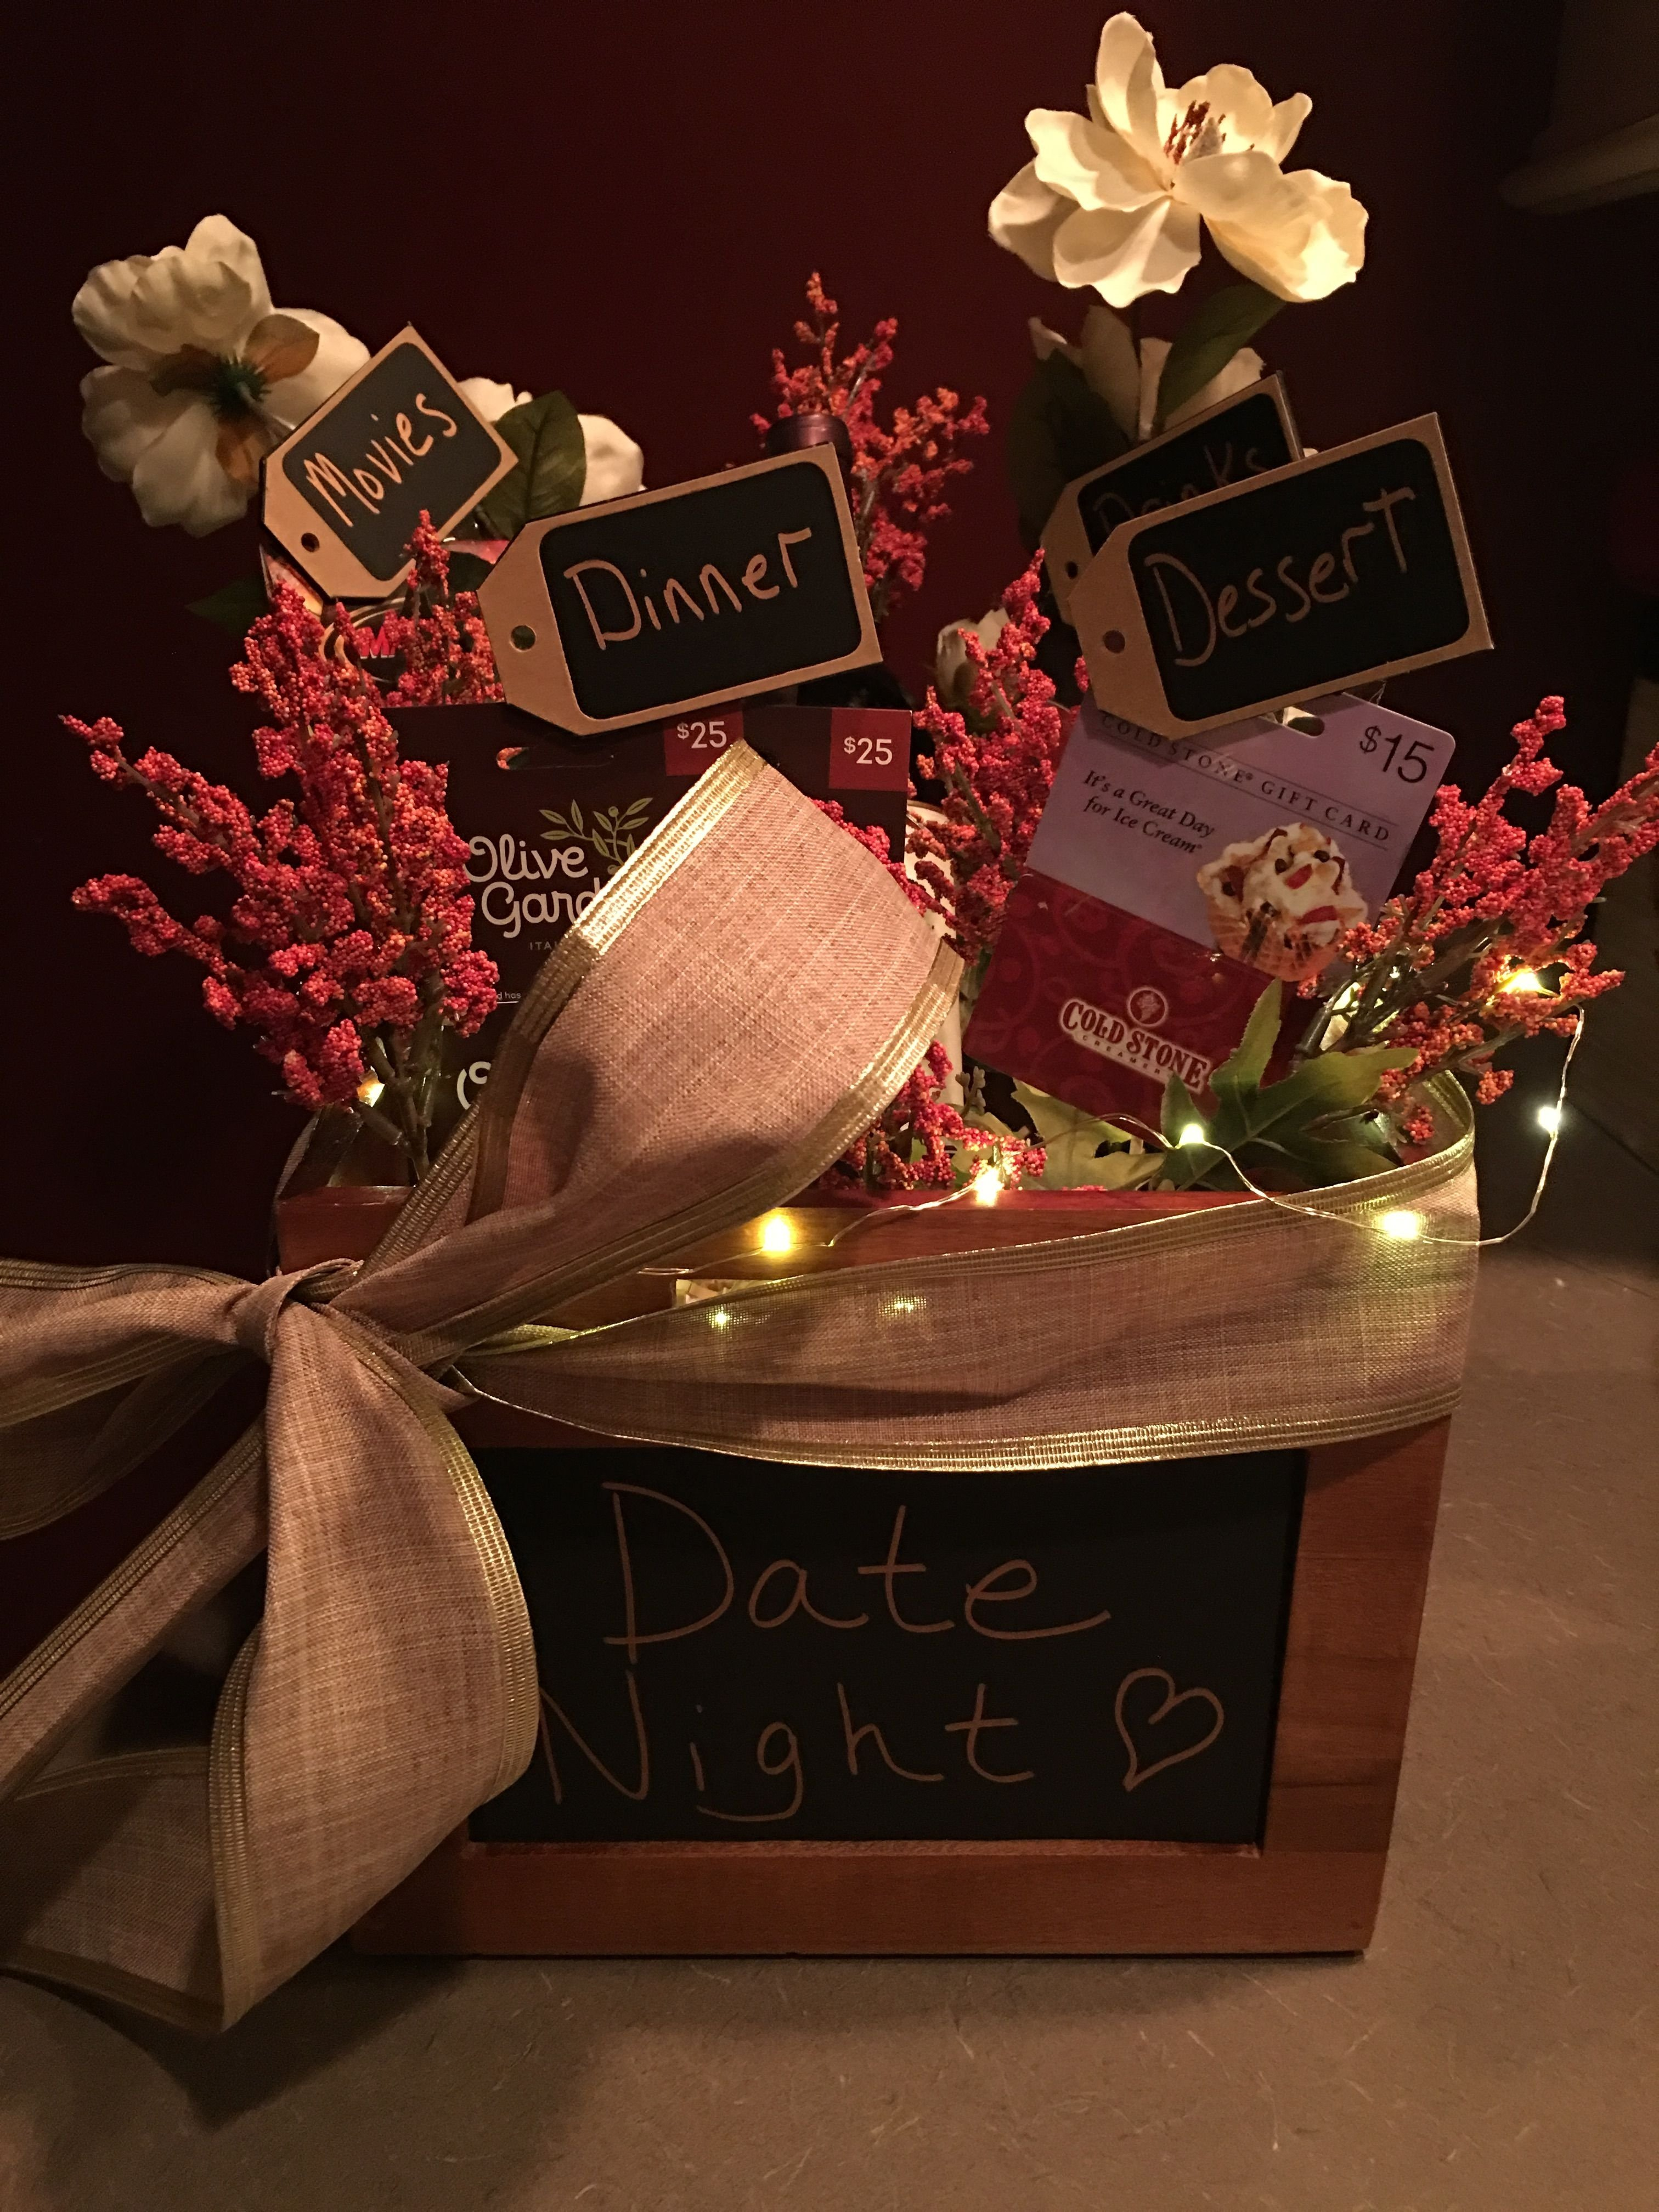 10 Trendy Gift Basket Ideas For Couples date night gift basket crafty pinterest gift basket ideas and 2020